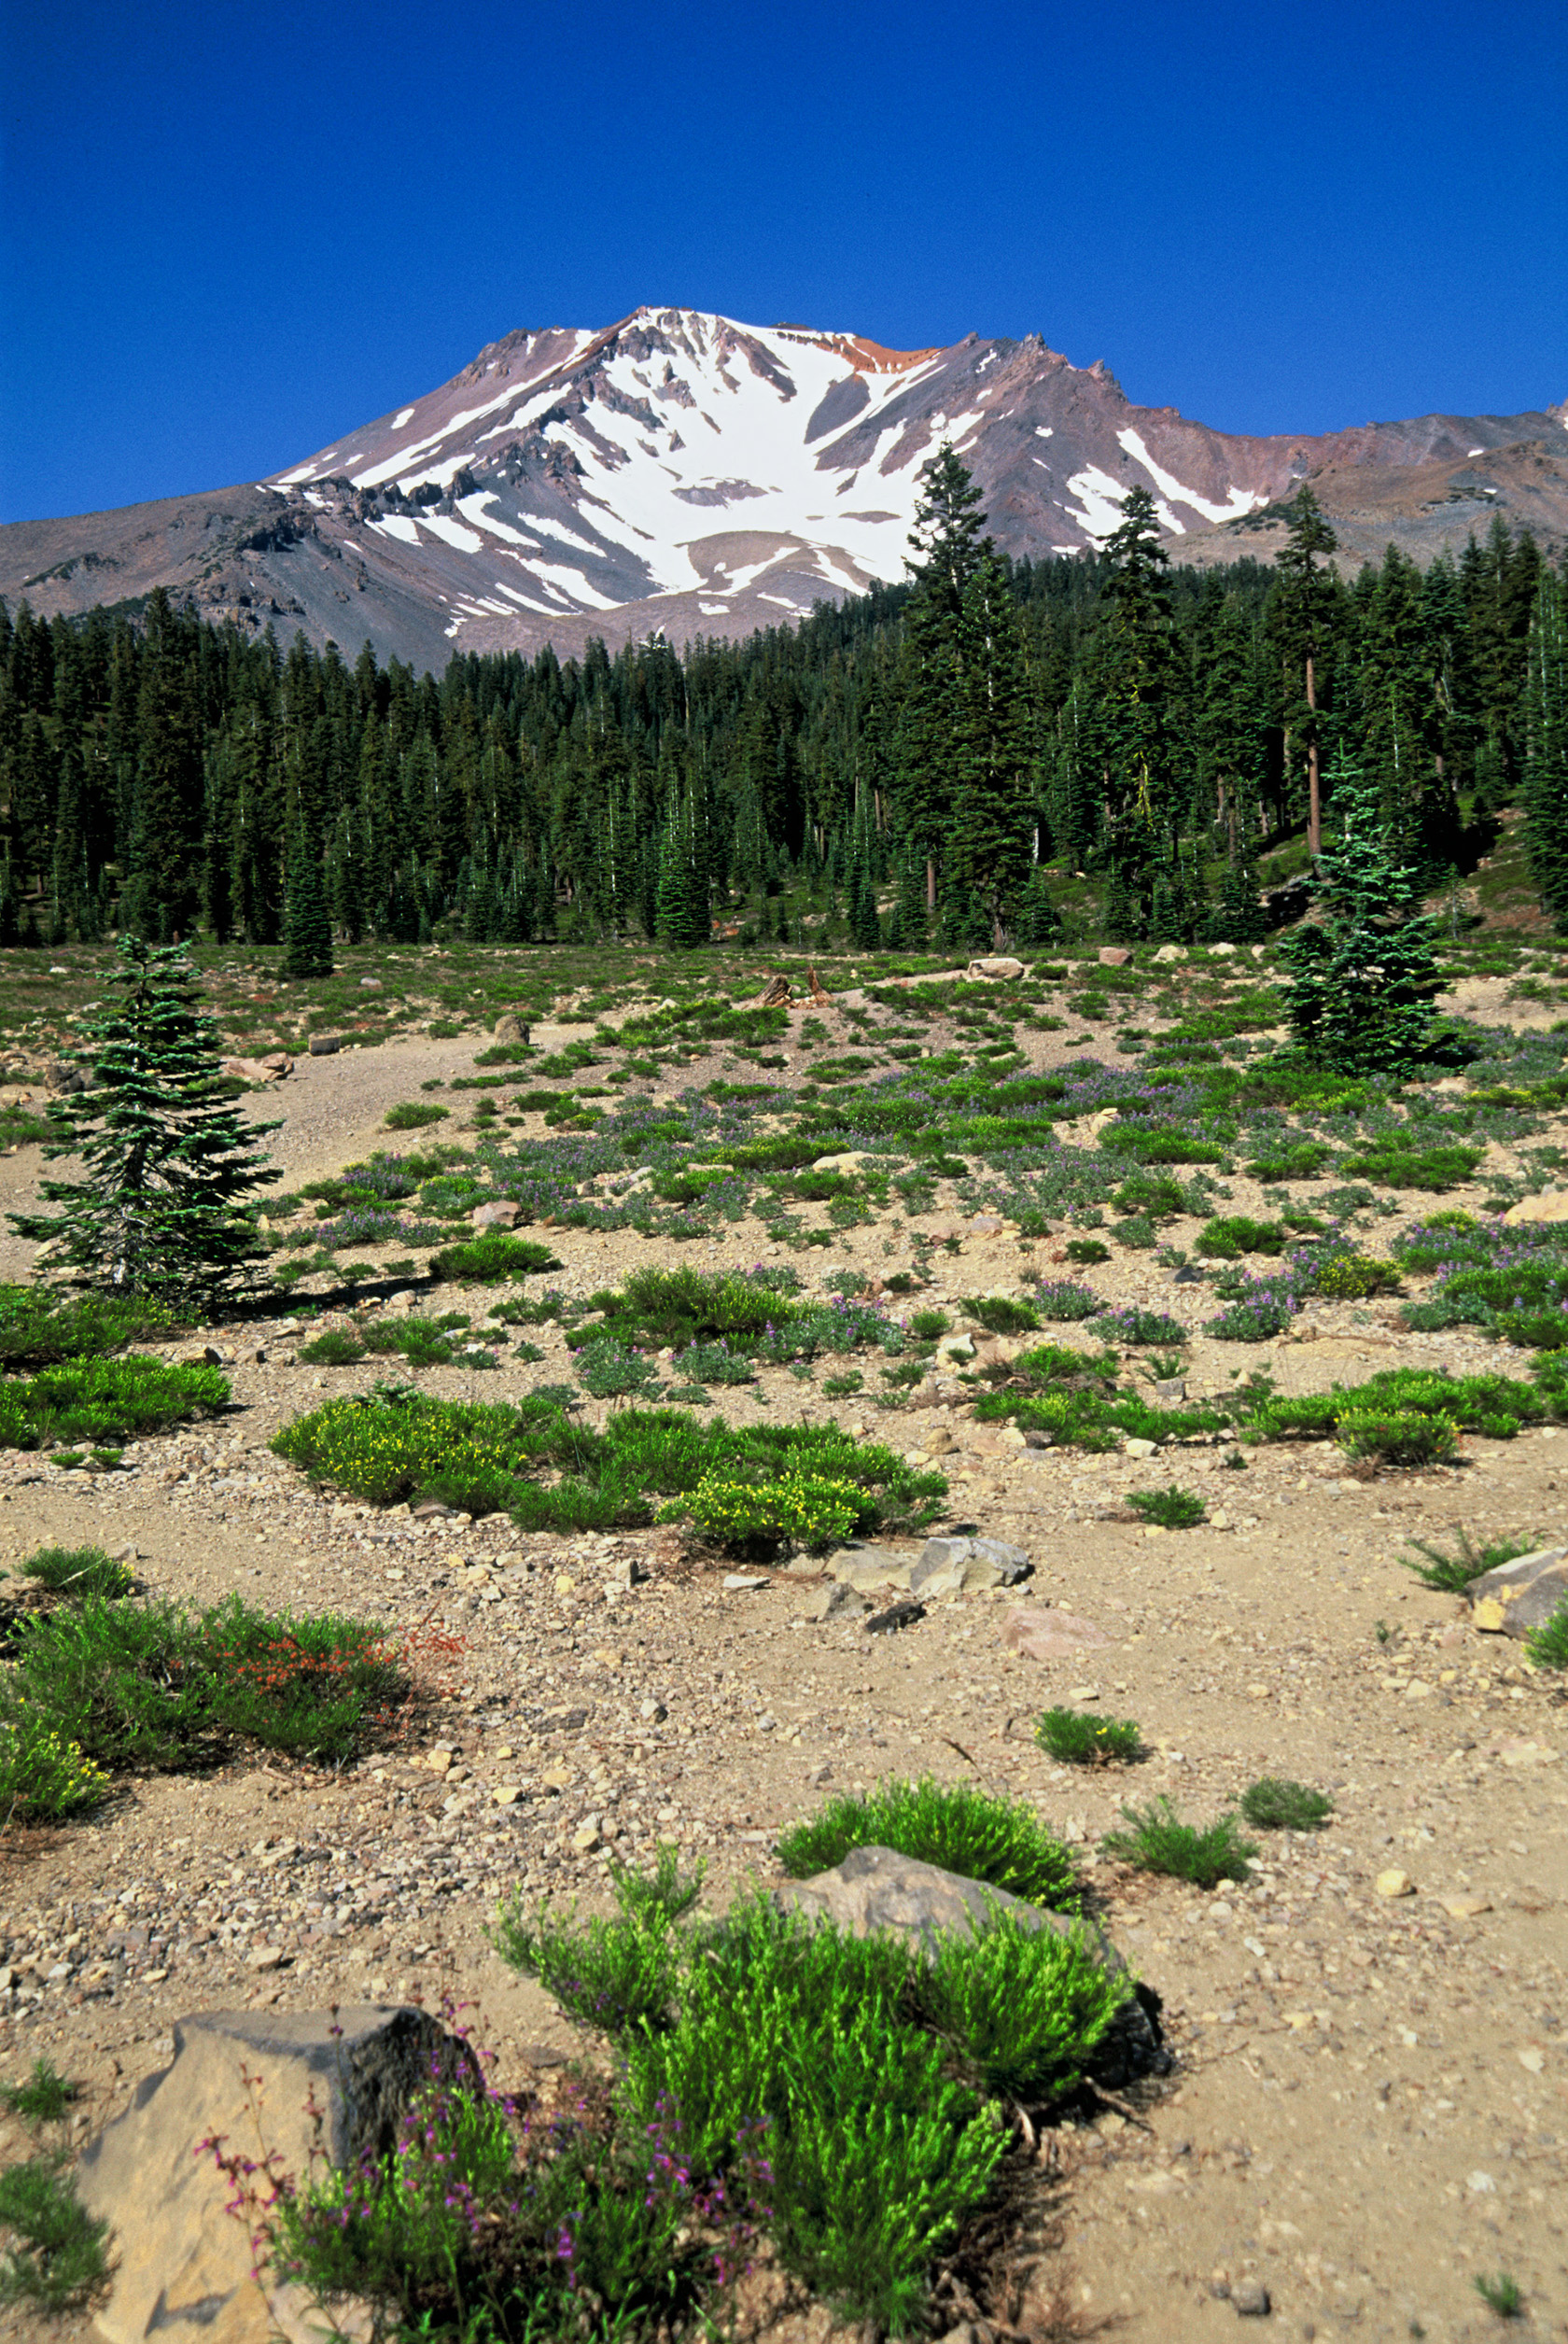 Mt Shasta, California